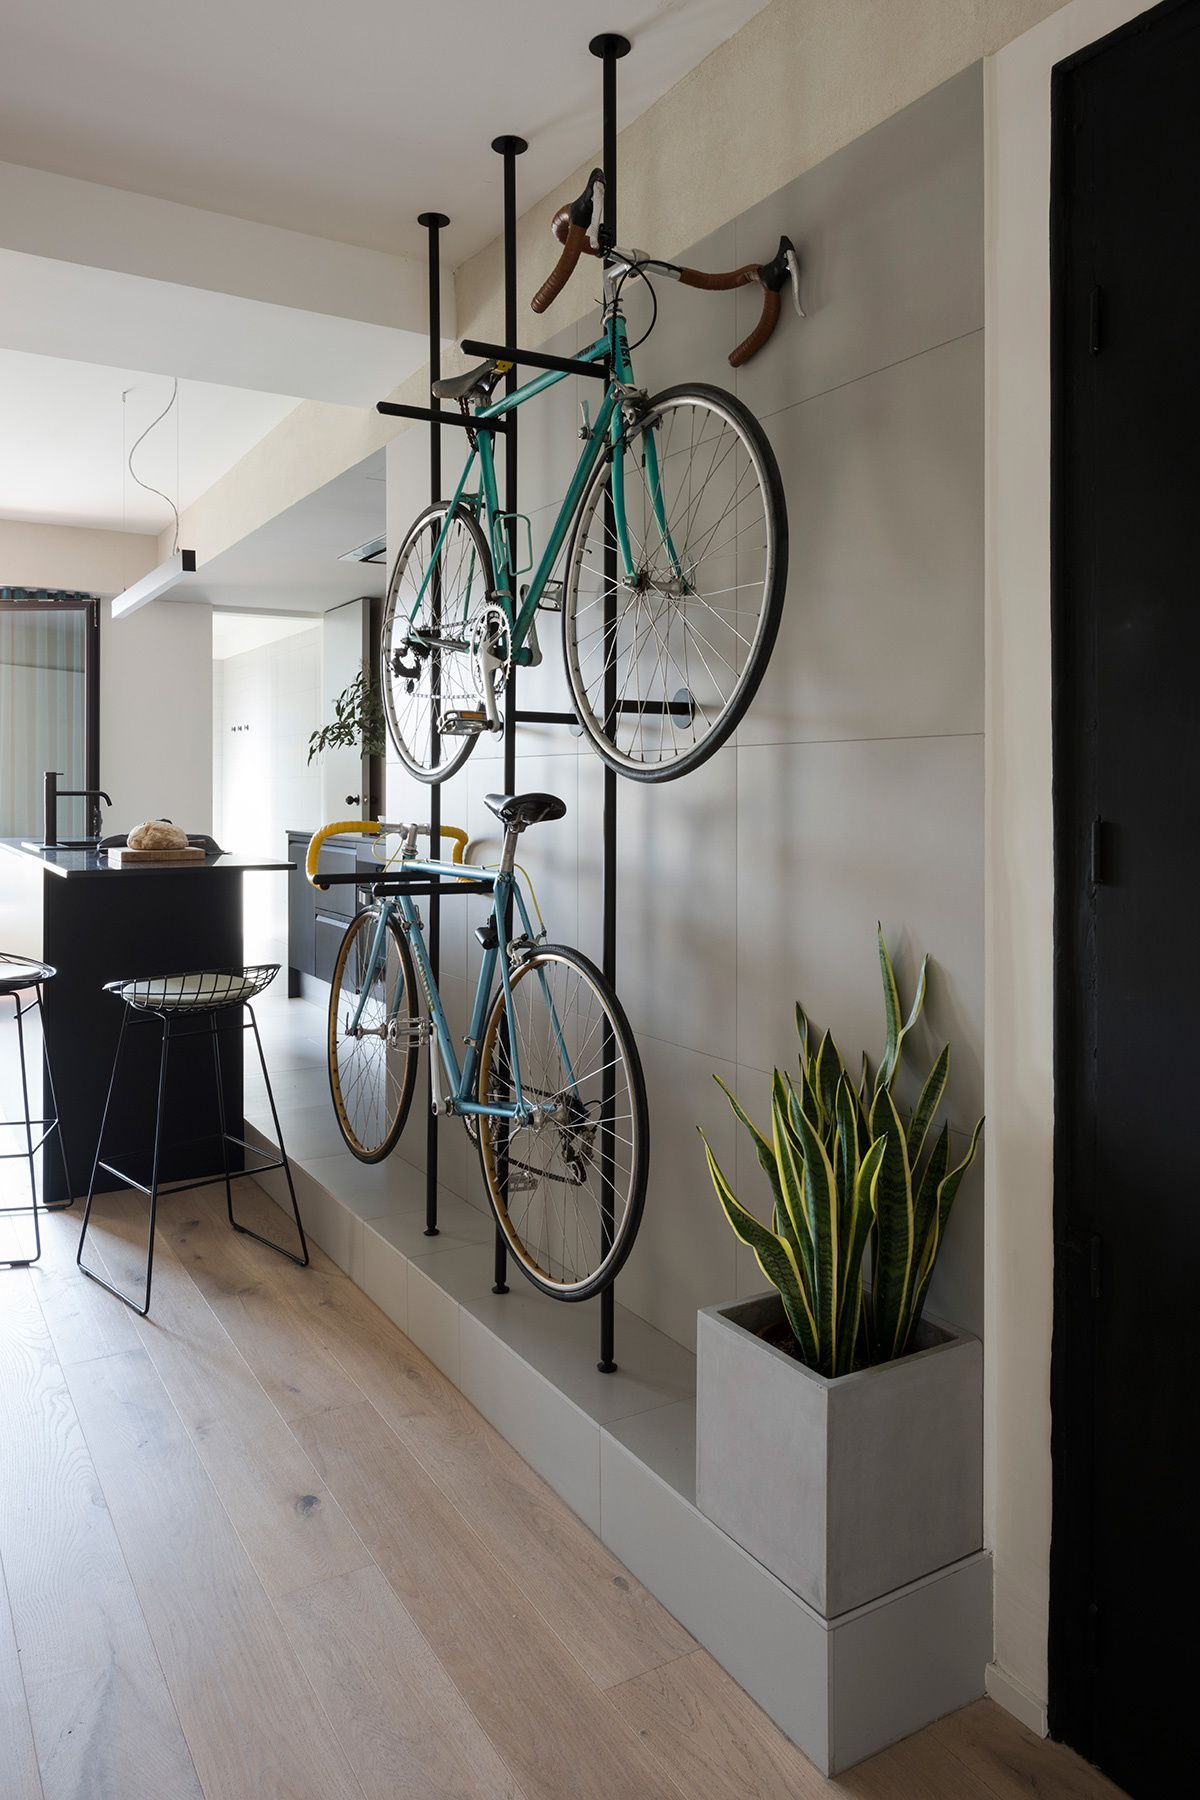 Look jeremy s bicycle rack apartment therapy - Soportes De Pared Para Colgar Bicicletas Escultura De Madera Organitzaci Bicicletes Pinterest Bike Hanger Vintage Chairs And Storage